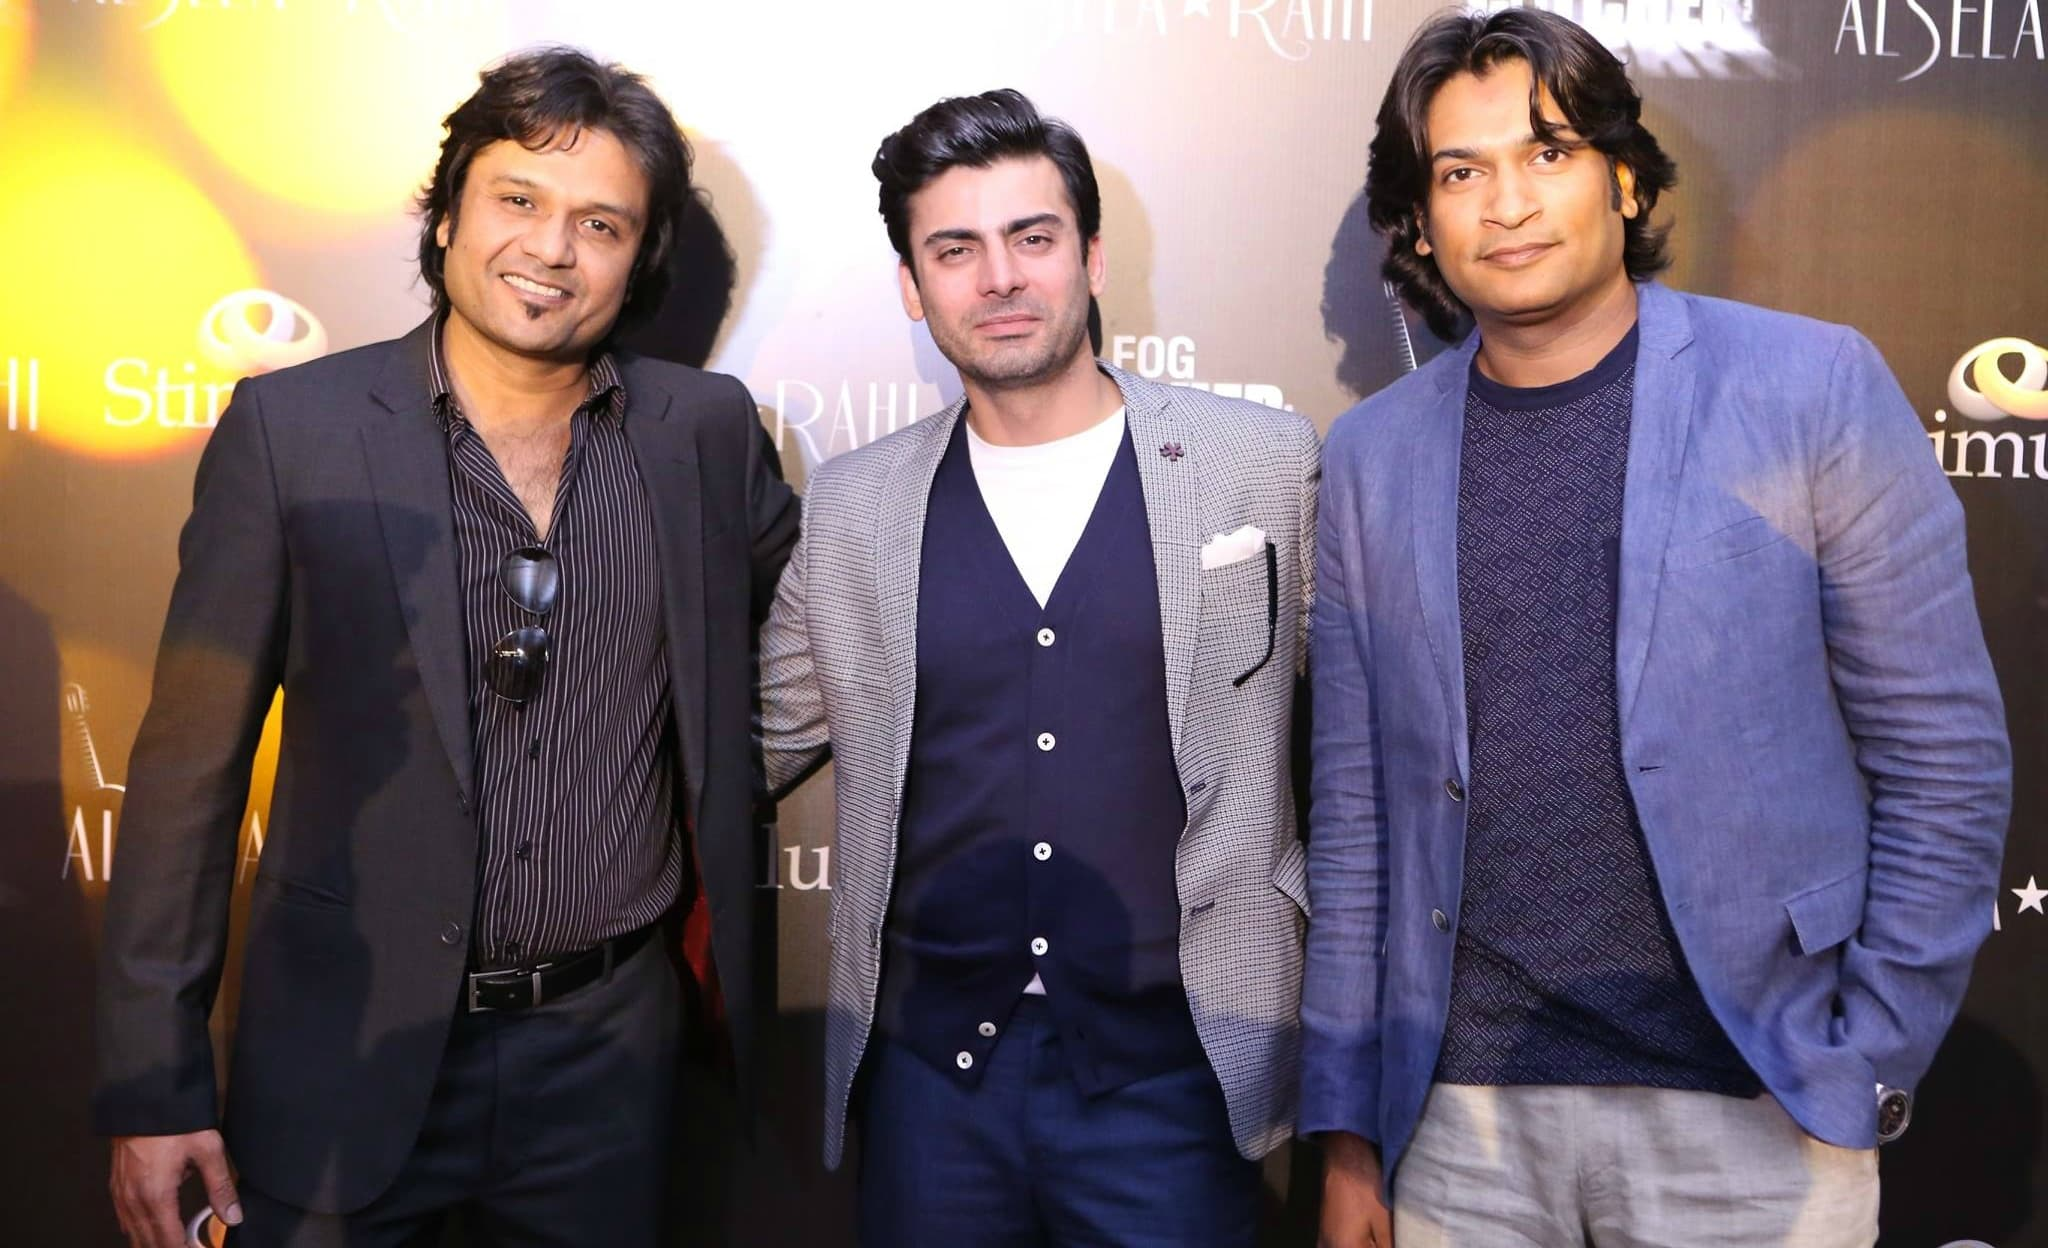 Fawad Khan with Fog Catcher Films' Sultan Ghani Afzal and Faisal Hashmi at the film's announcement – Photo courtesy Albela Rahi's Facebook page